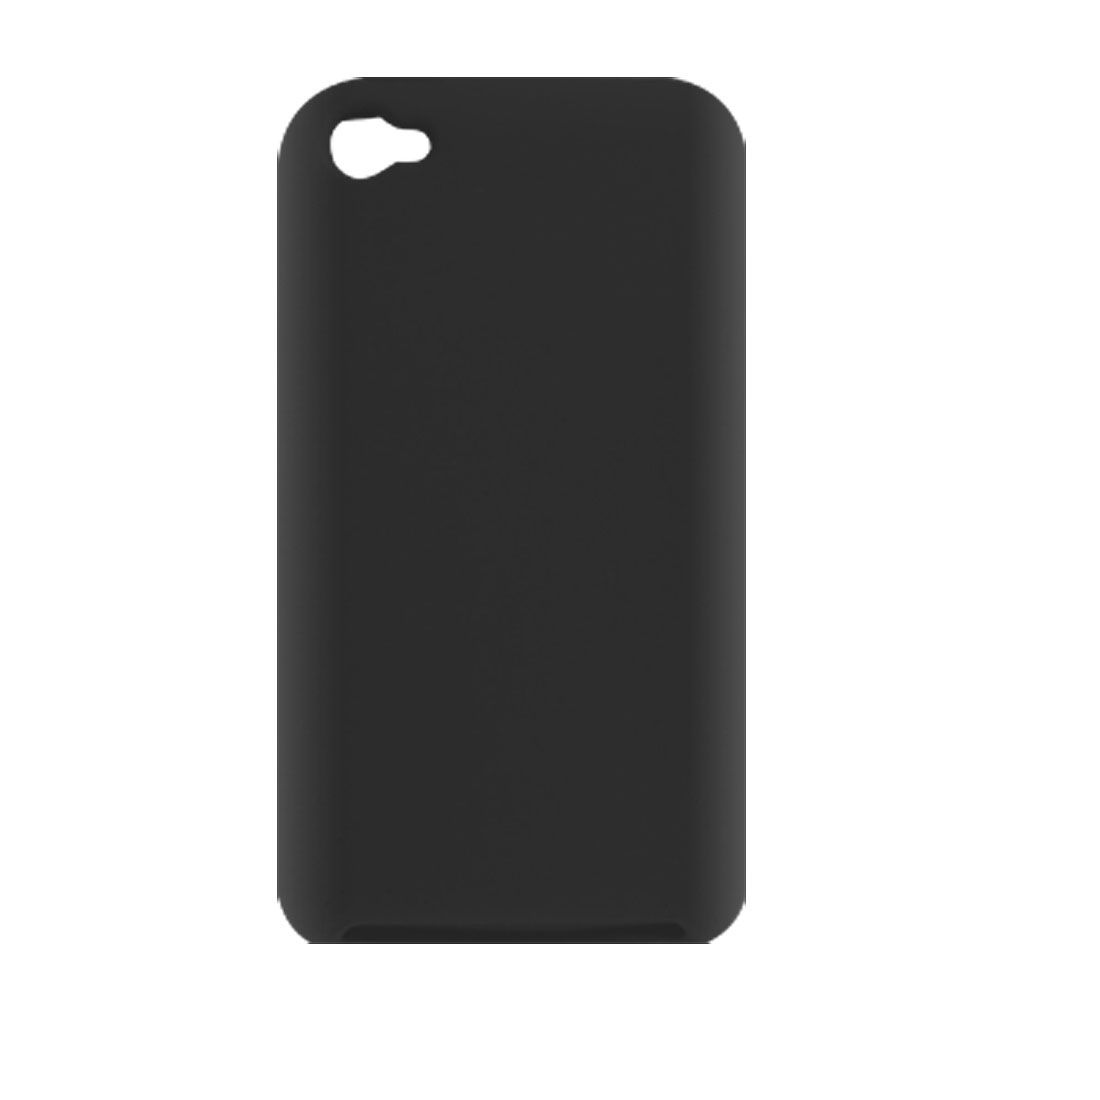 Protective Black Silicone Skin Case for iPod Touch 4G